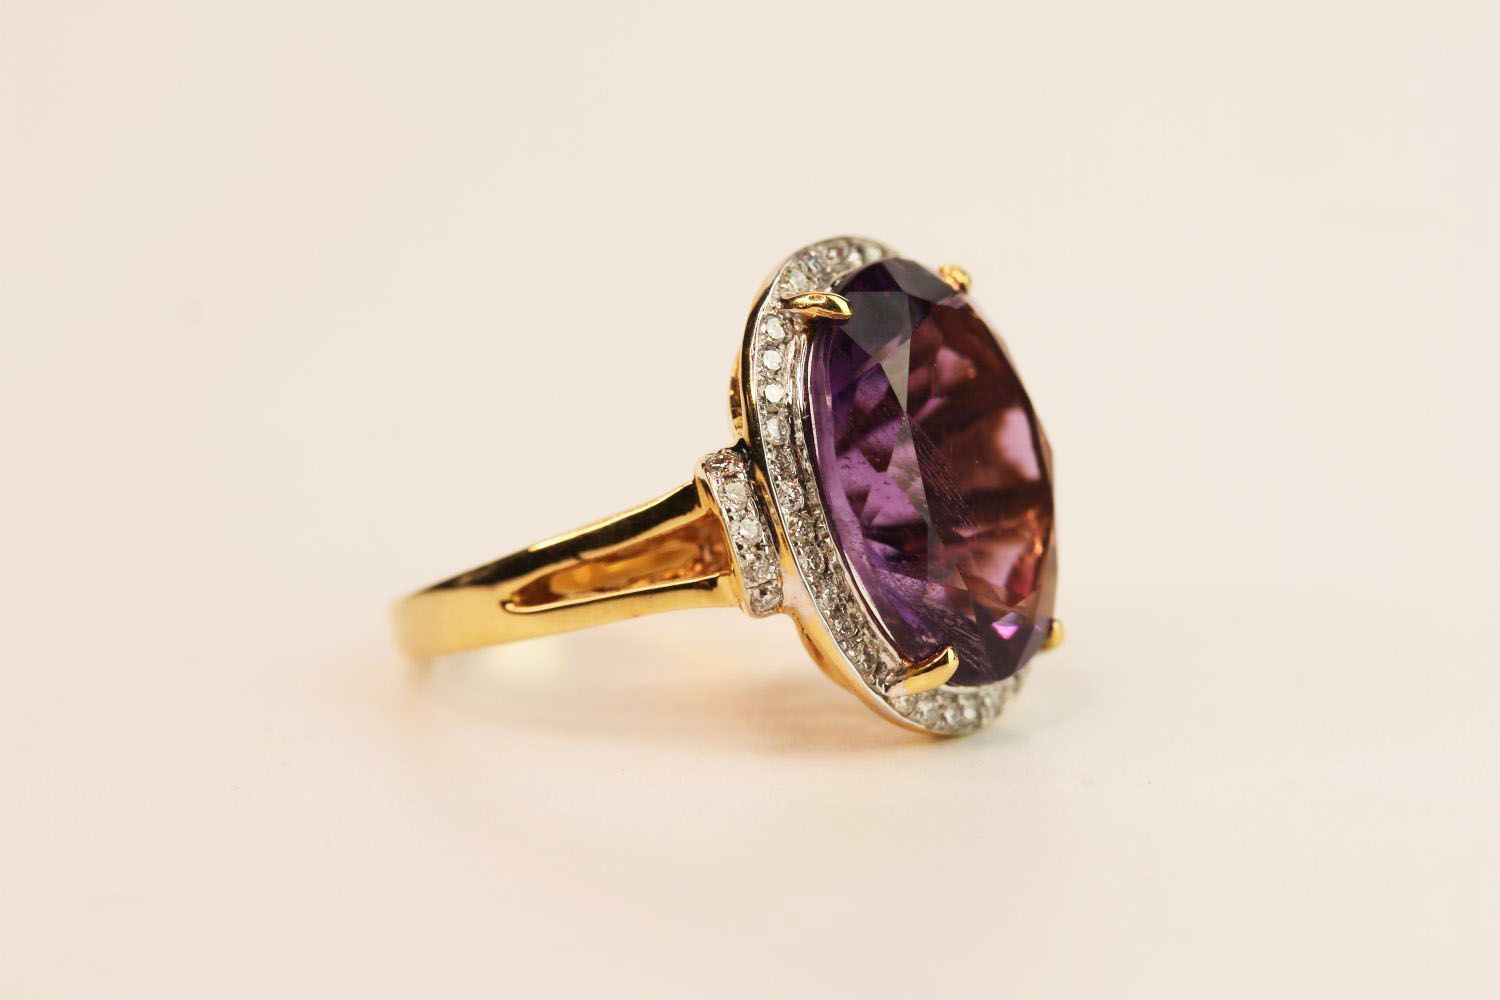 Amethyst & Diamond Cluster Ring, set with an oval cut amethyst, surrounded by round brilliant - Image 2 of 3